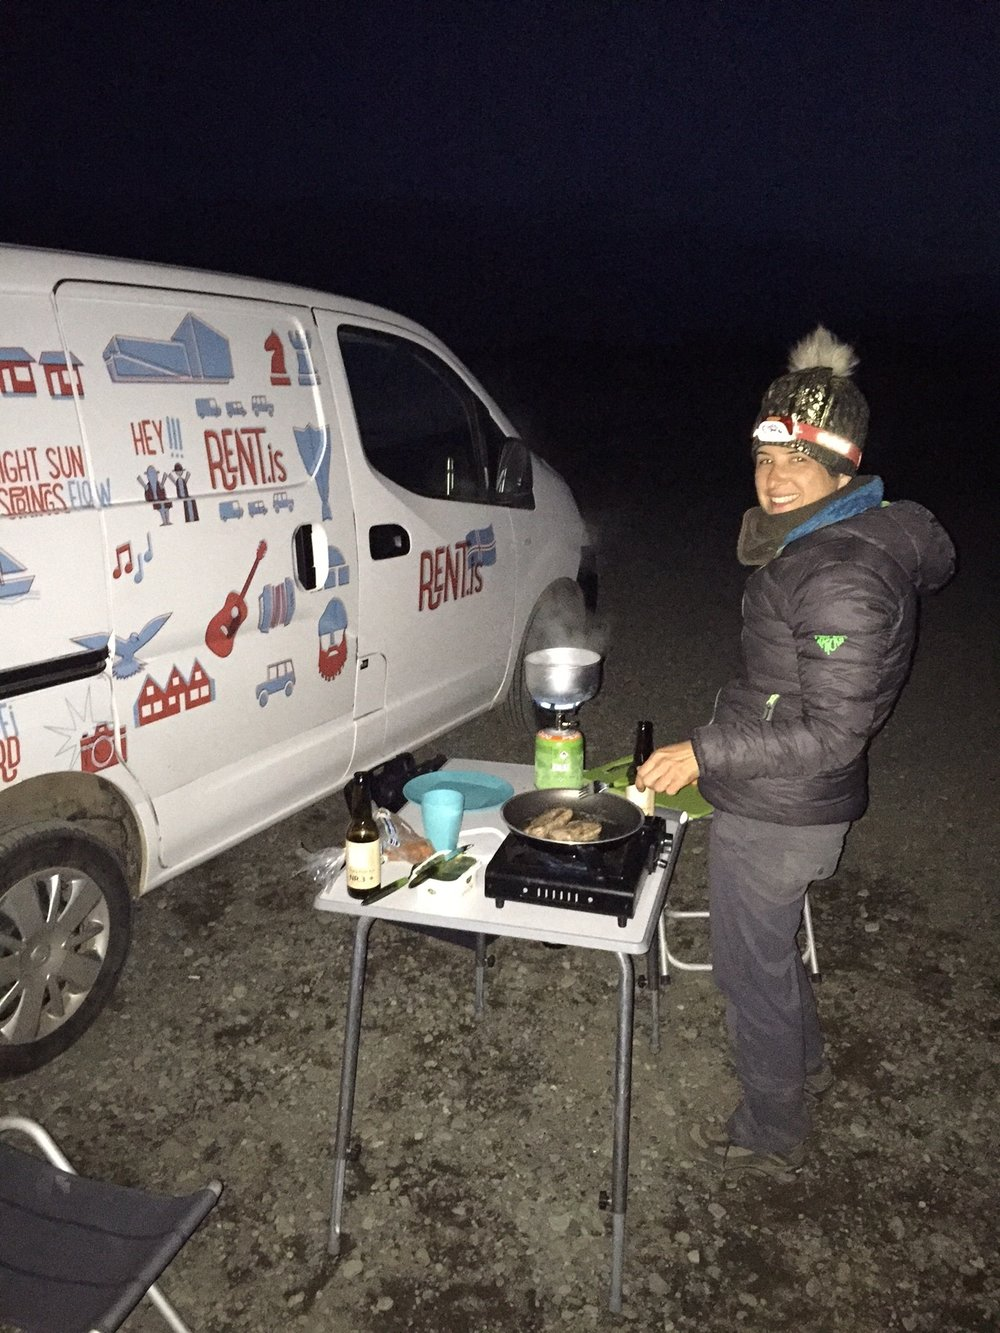 Making lamb dinner at Jokulsarlon.